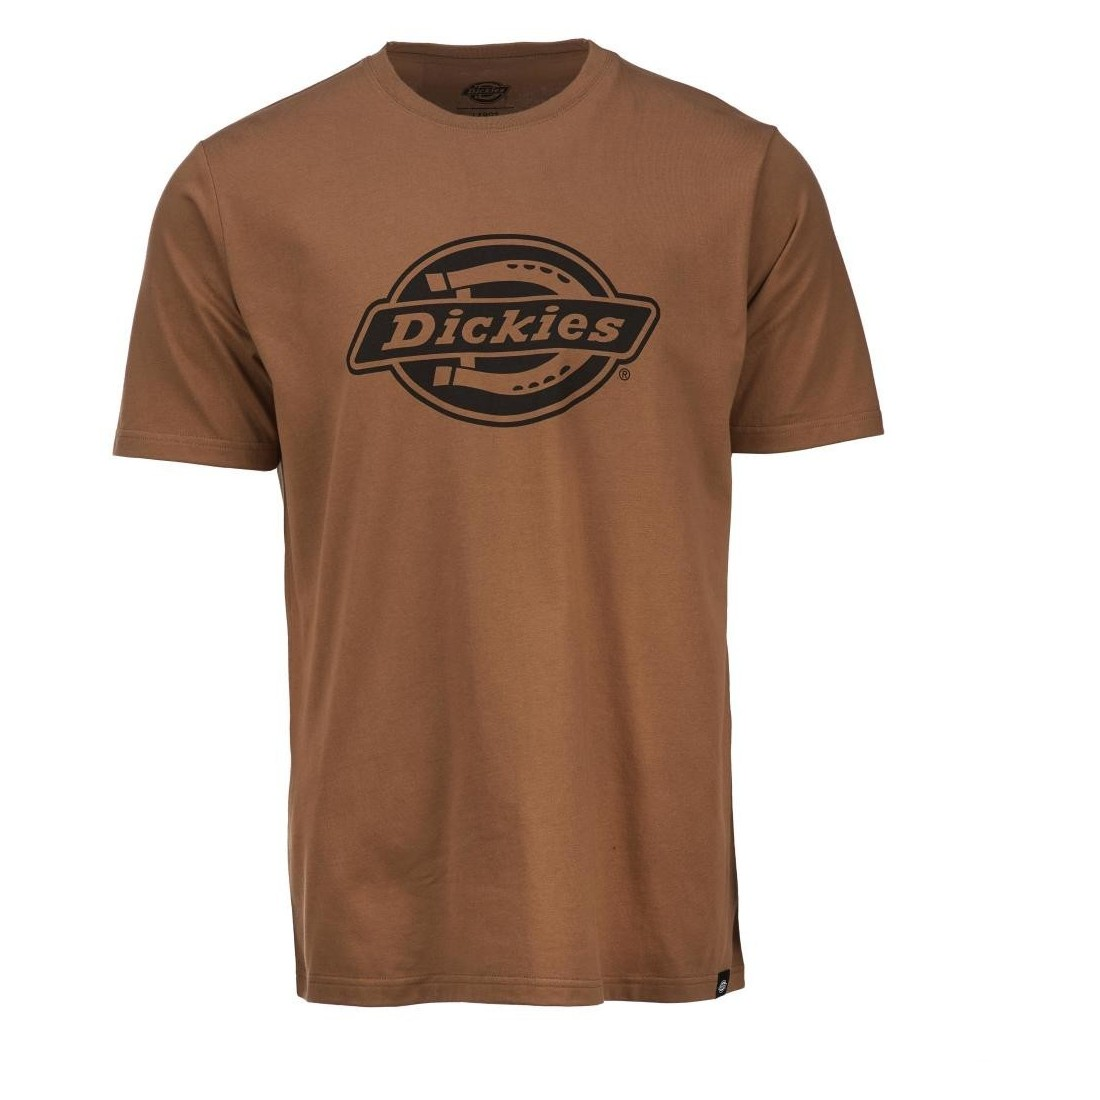 T SHIRT DICKIES HS brown duck